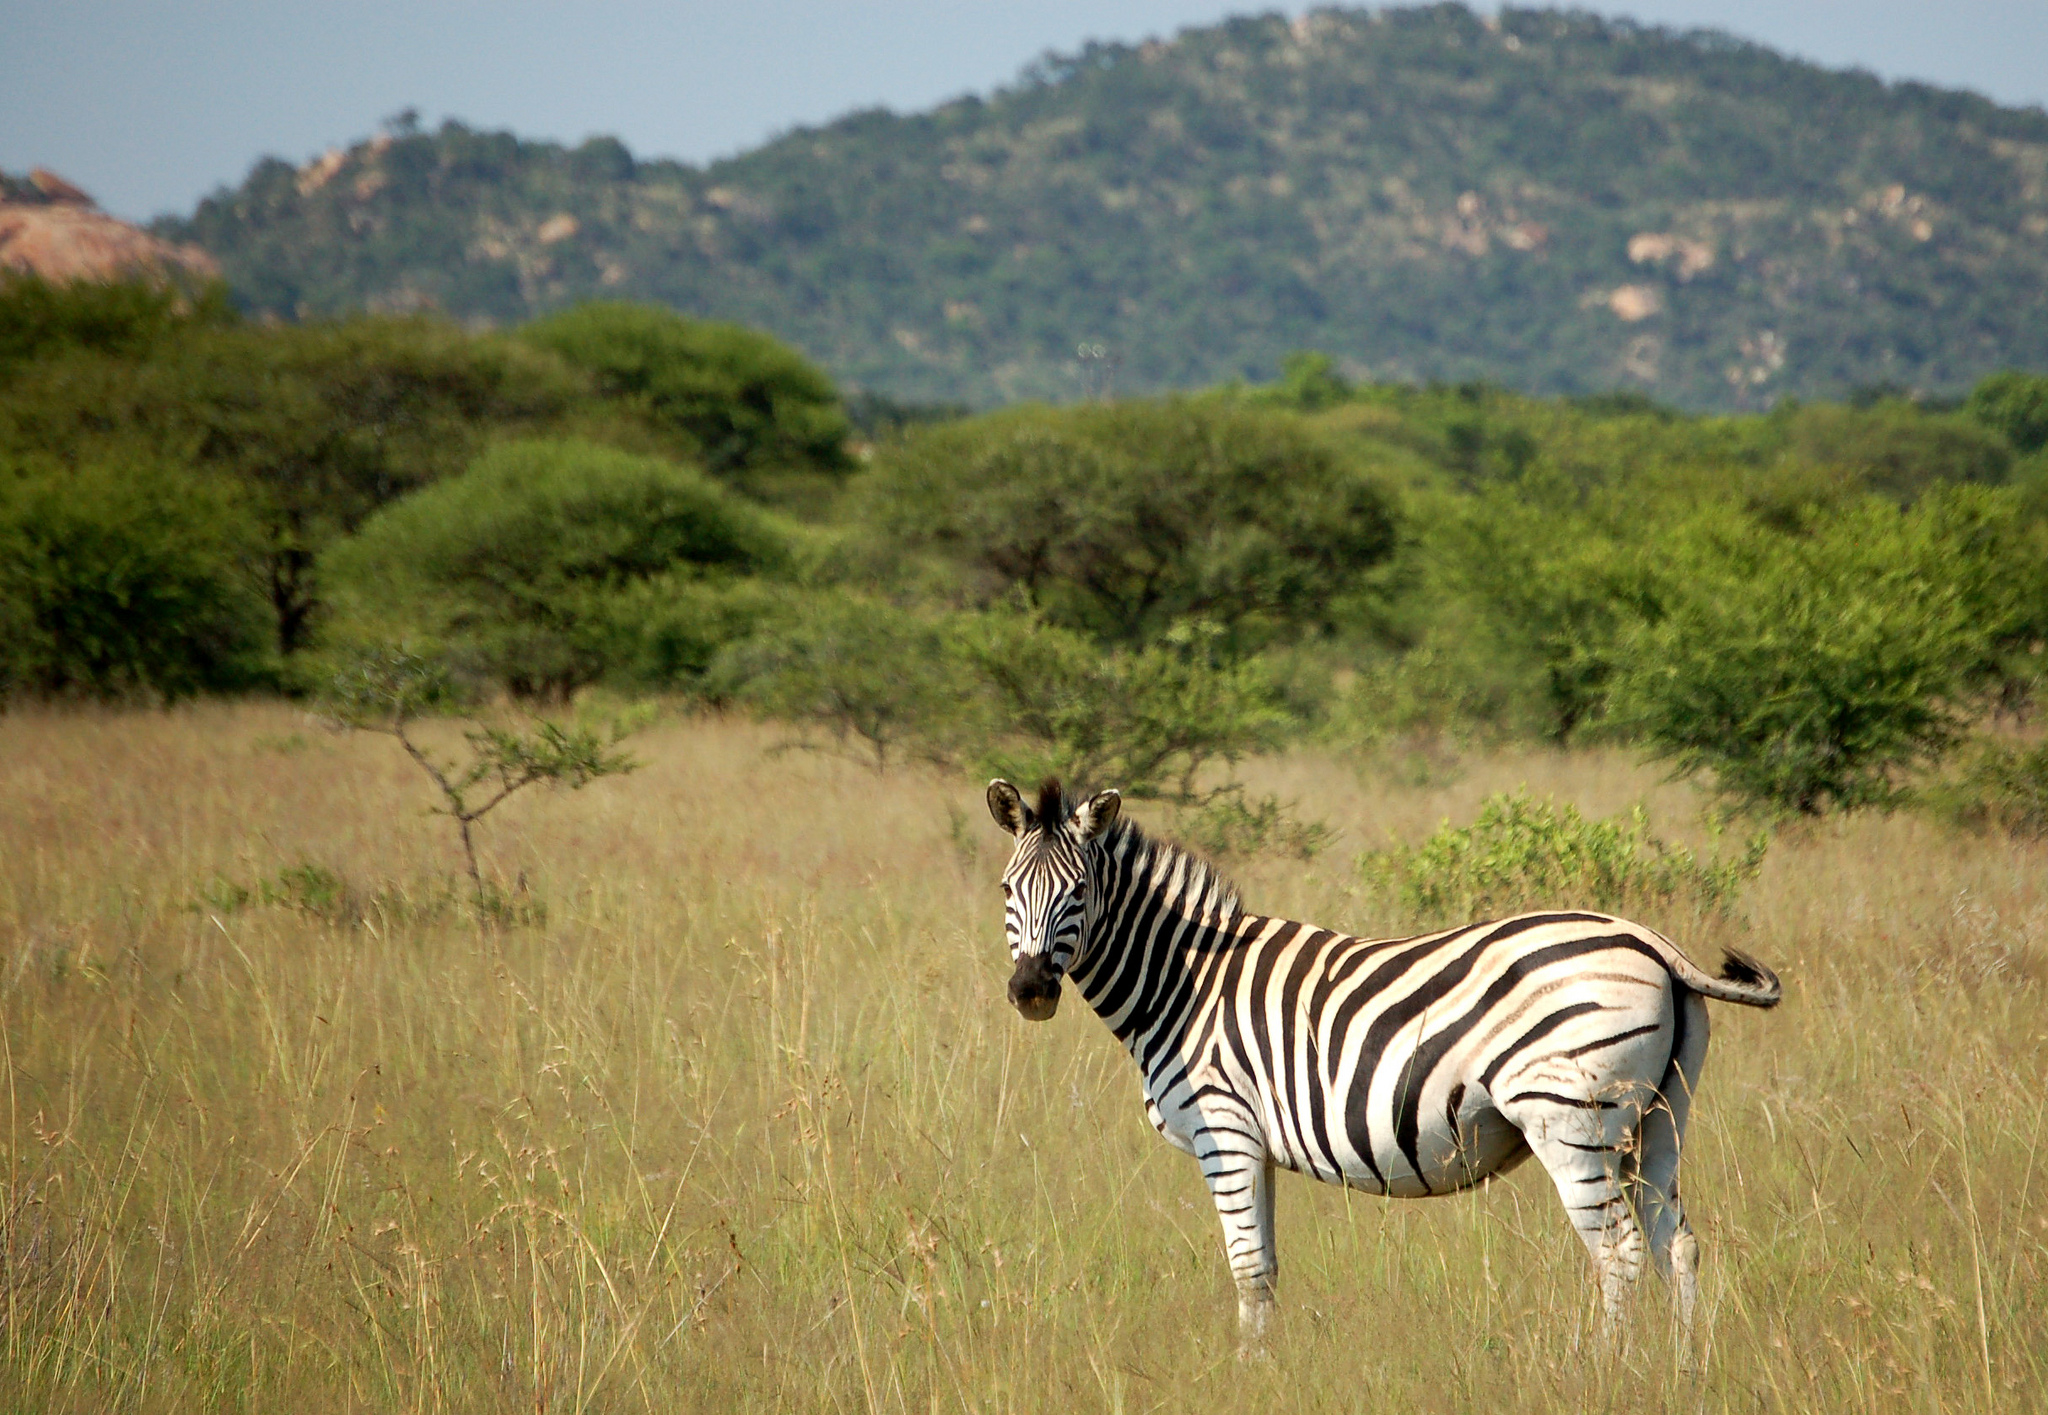 """Polokwane Game Reserve, South Africa, 2013"" by Matt Artz via Flickr Creative Commons"